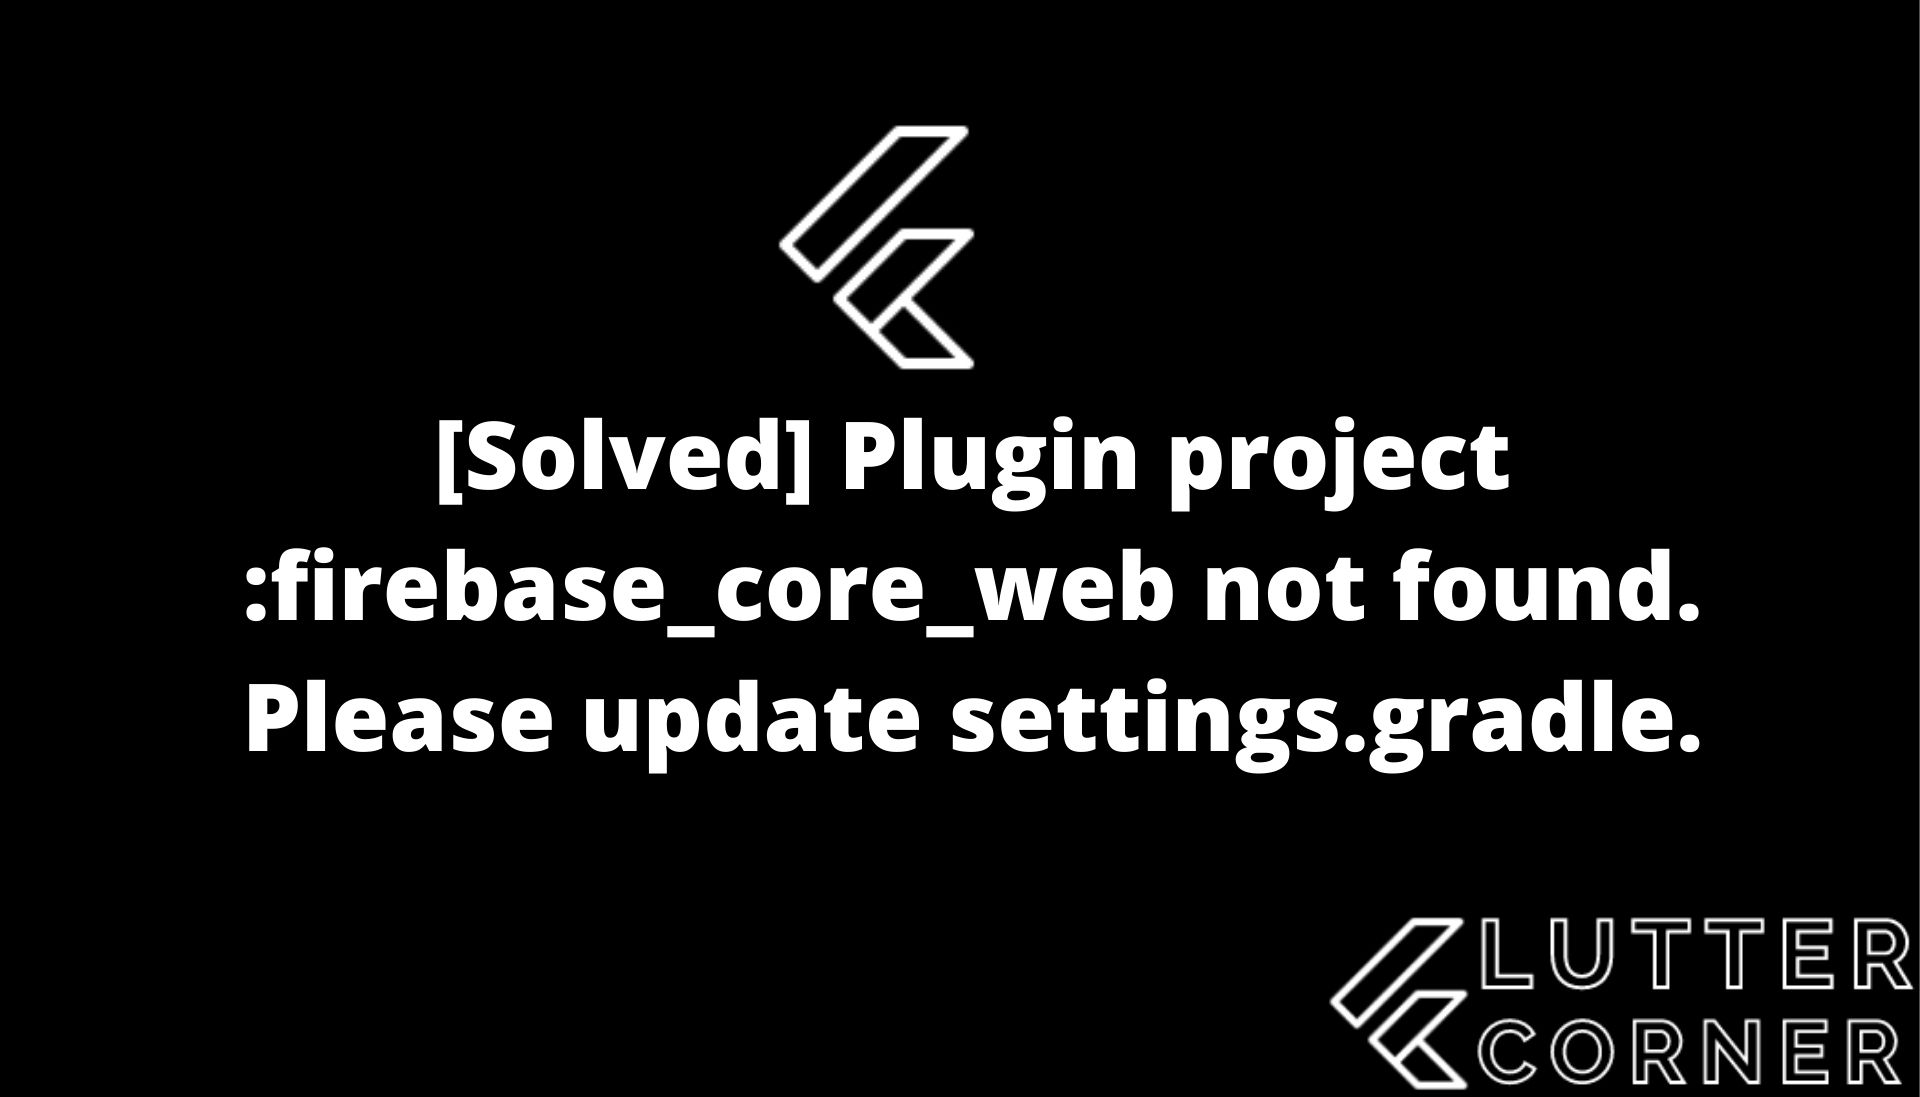 Plugin project :firebase_core_web not found. Please update settings.gradle, plugin project firebase_core_web not found, firebase_core_web not found, Please update settings.gradle